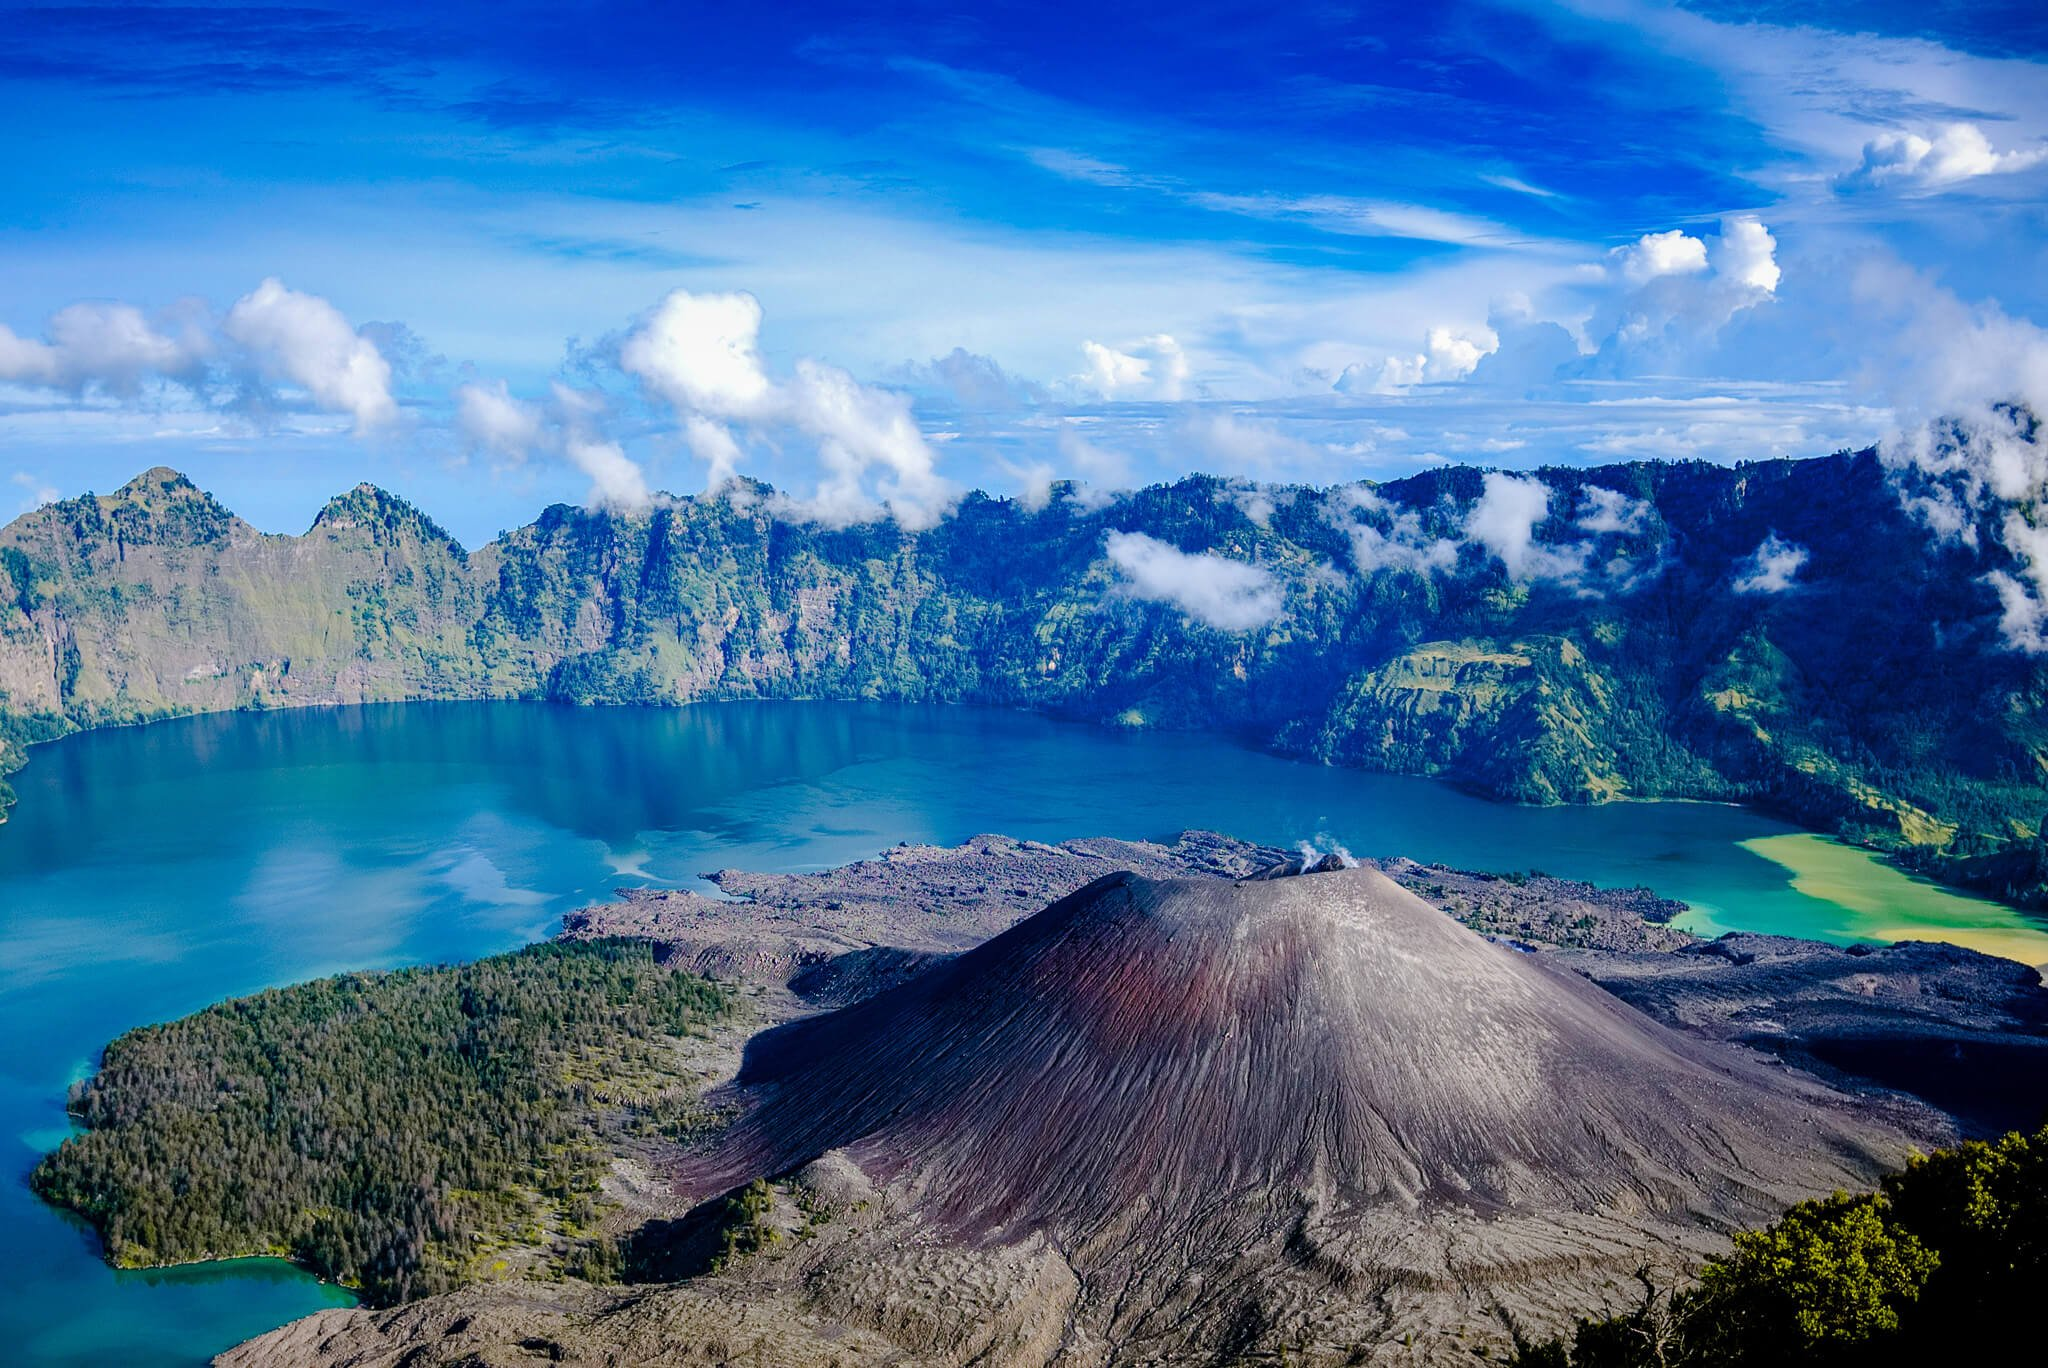 Mt Rinjani lombok indonesia - a travel bucket list experience